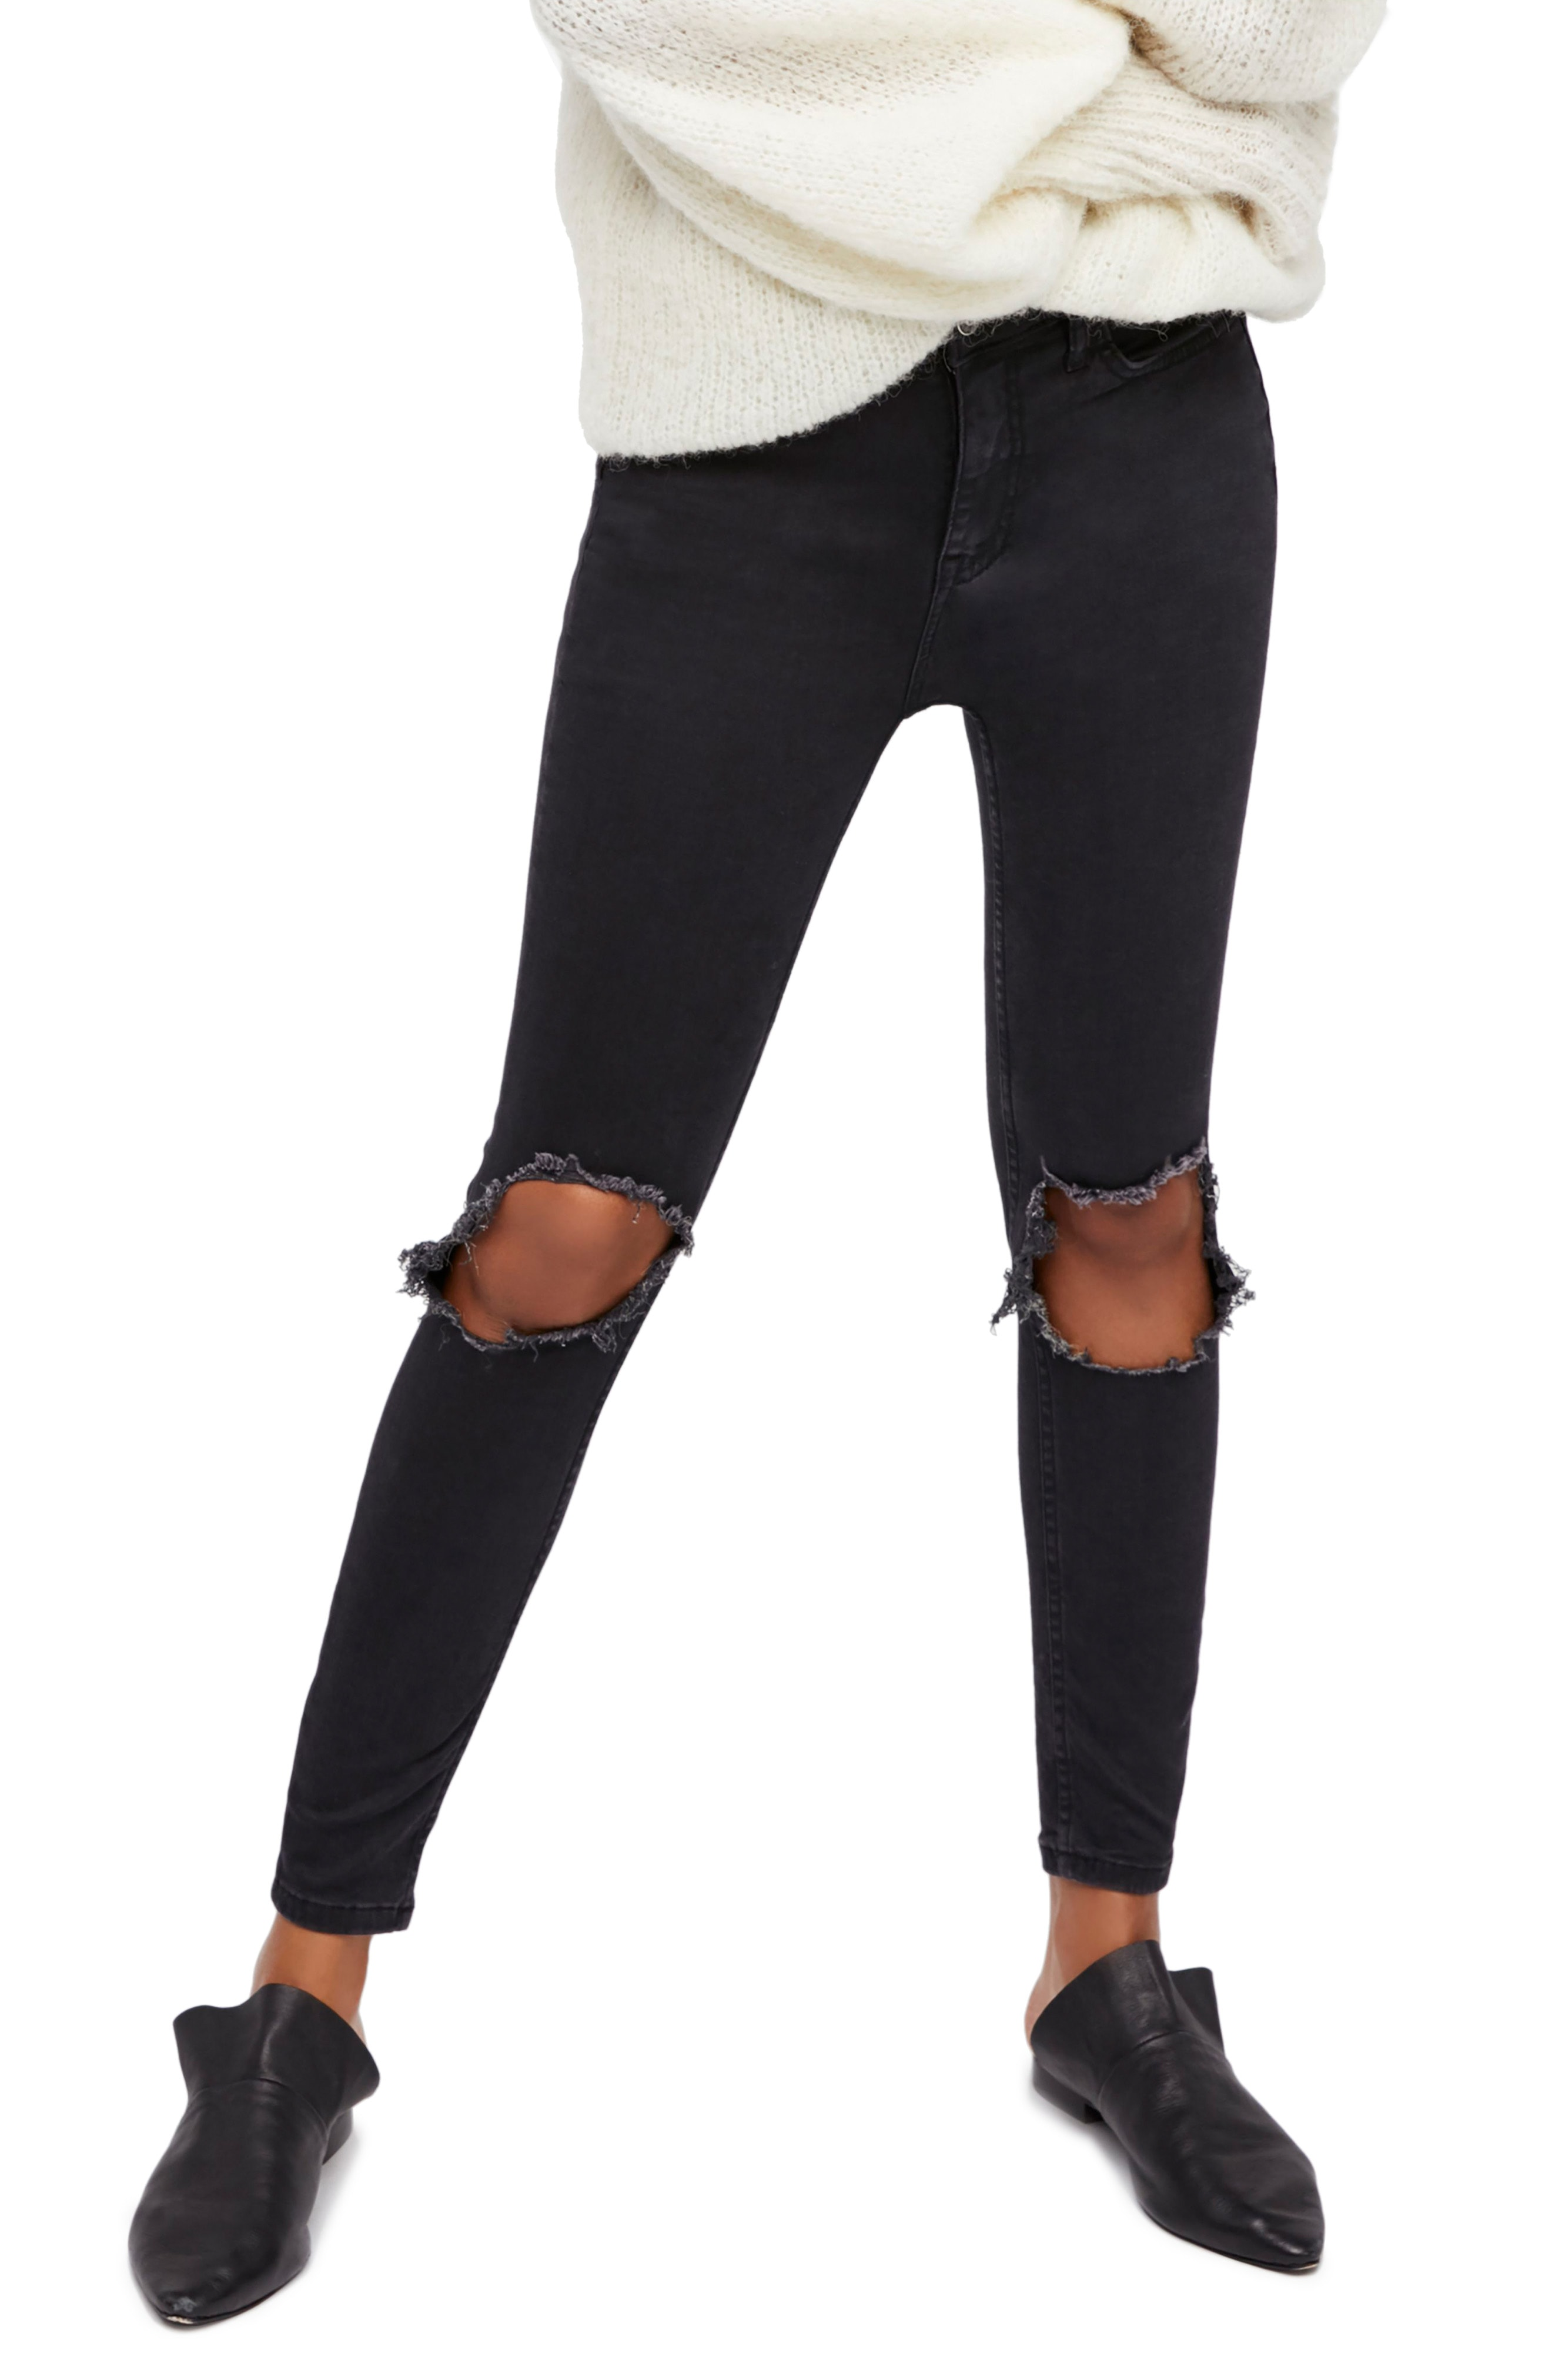 Ripped black jeans   Nordstrom